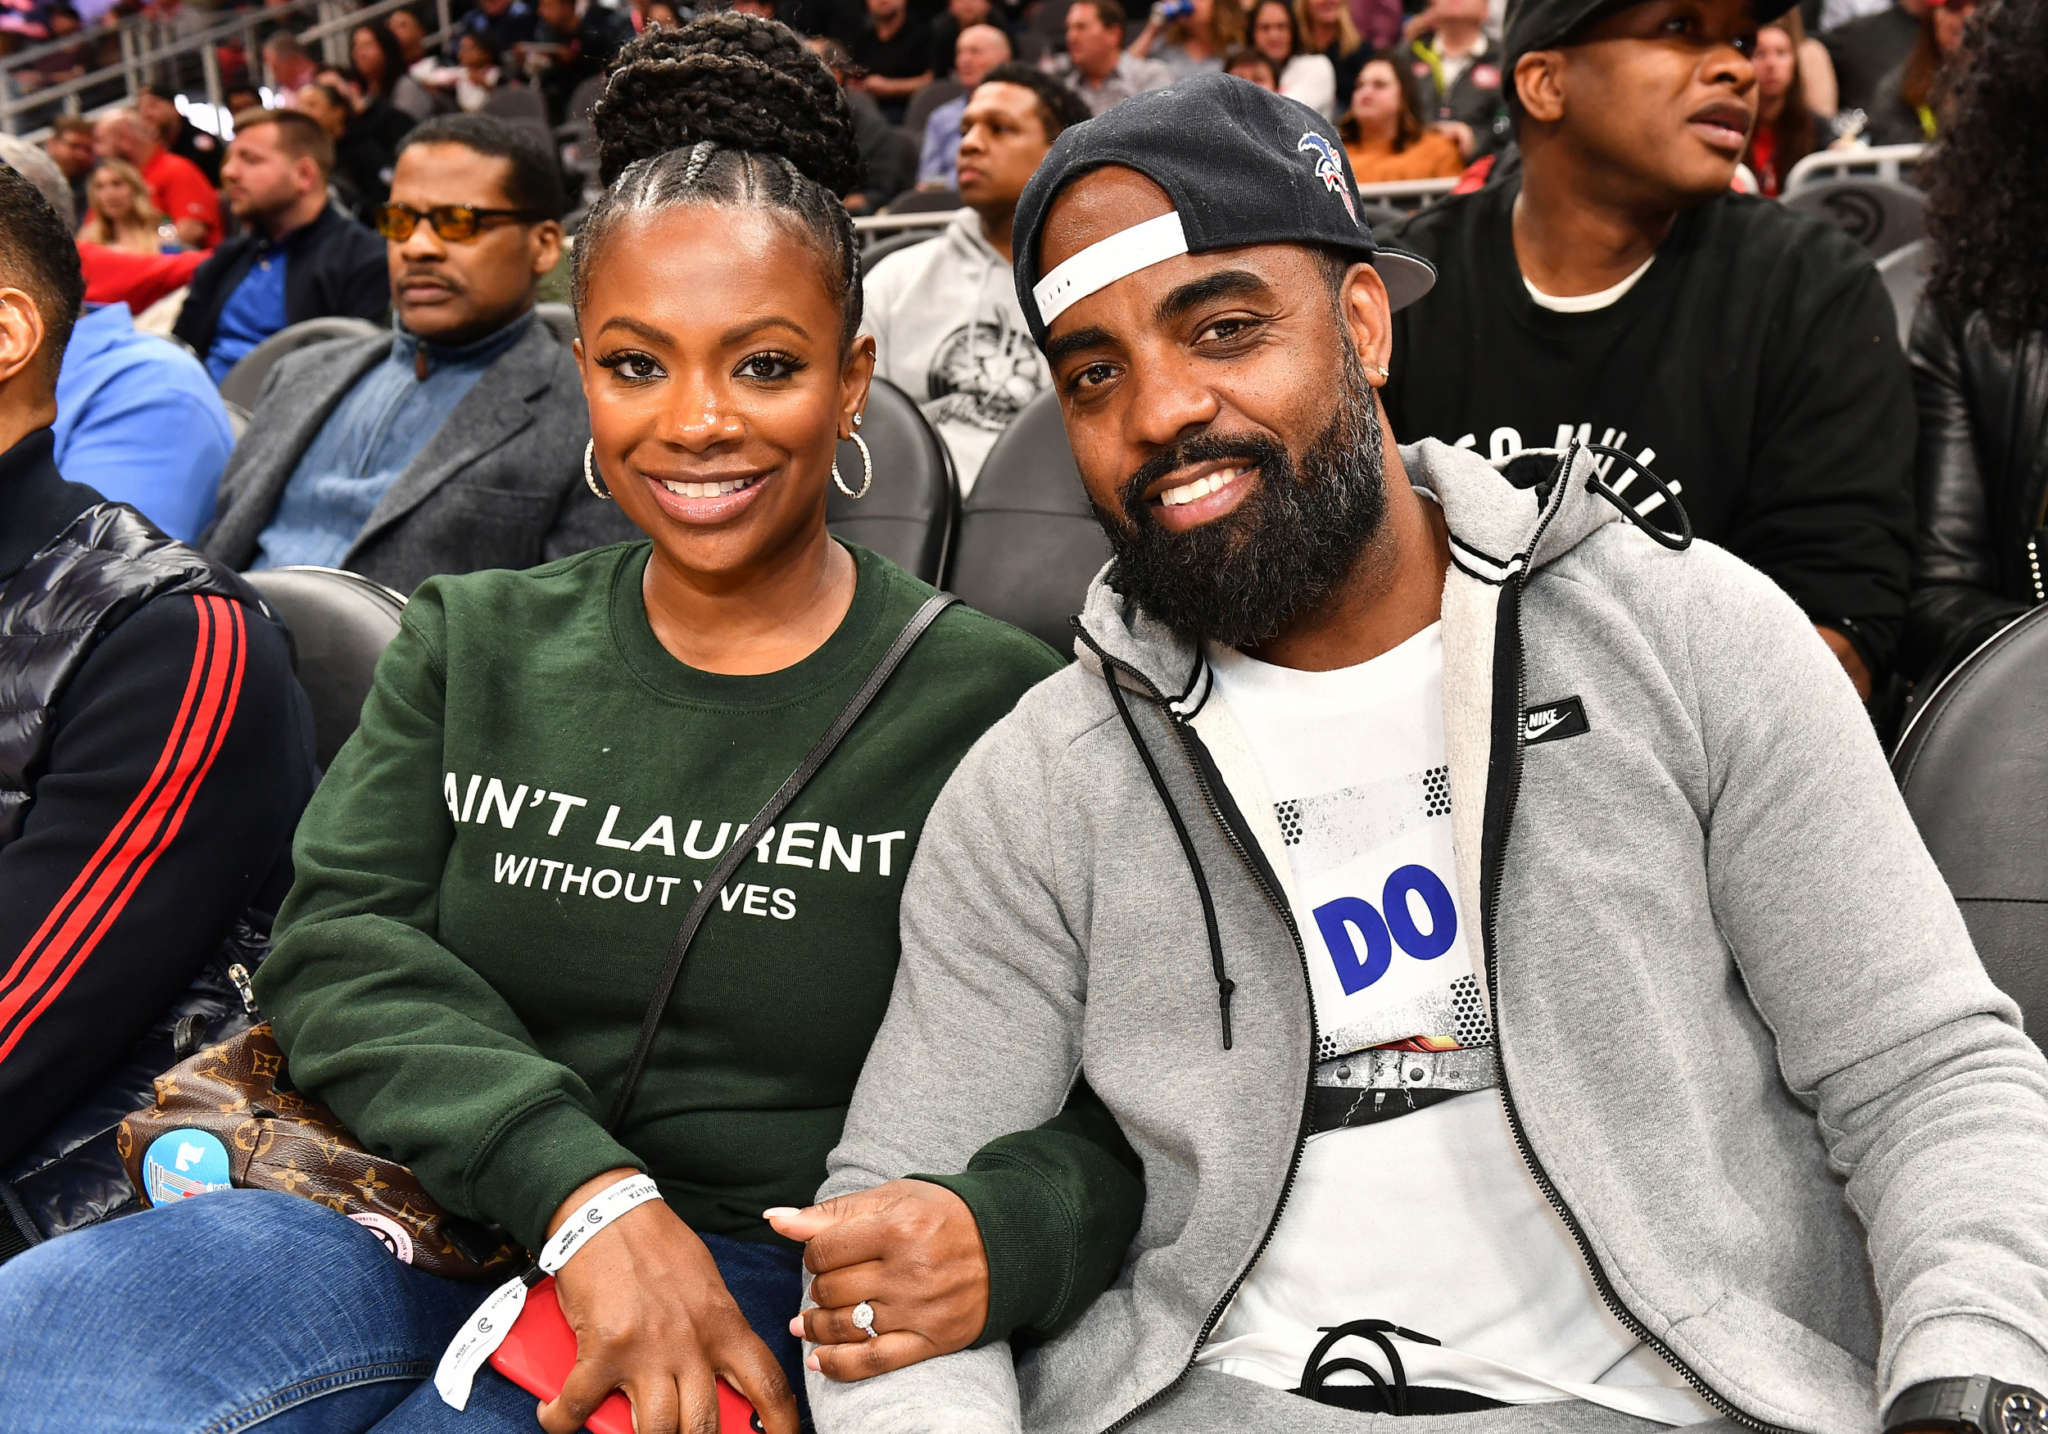 Kandi Burruss Celebrates Her Cousin's Birthday – Check Out The Gorgeous Photo In Which Kim Looks Like Mama Joyce